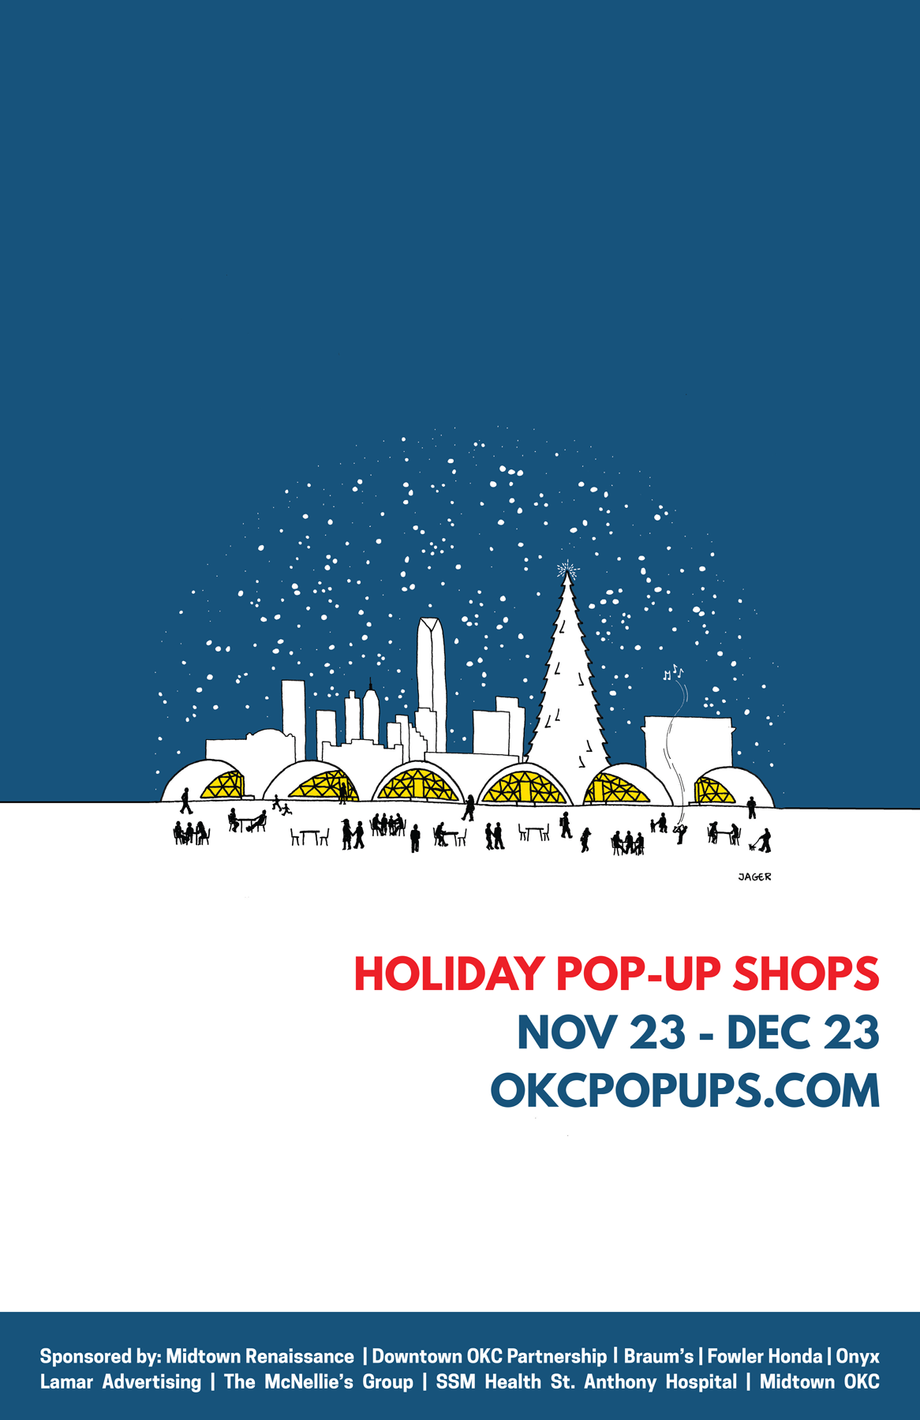 Poster for Holiday Pop-Up Shops